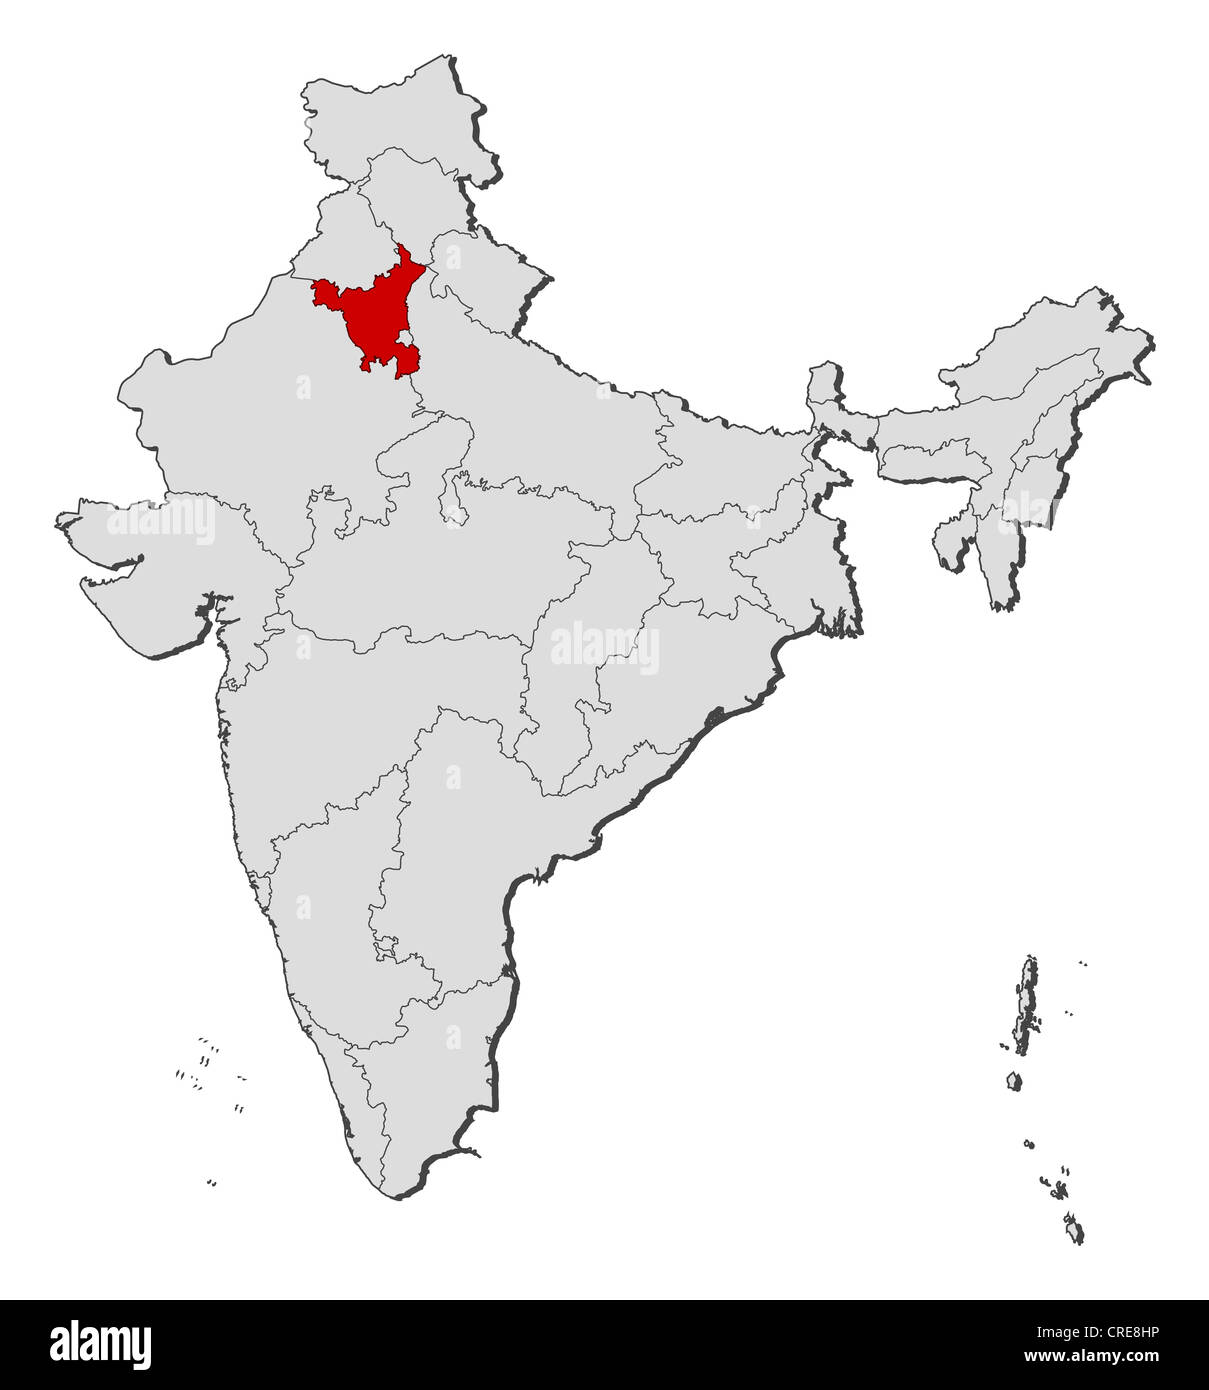 Haryana India Map.Political Map Of India With The Several States Where Haryana Is